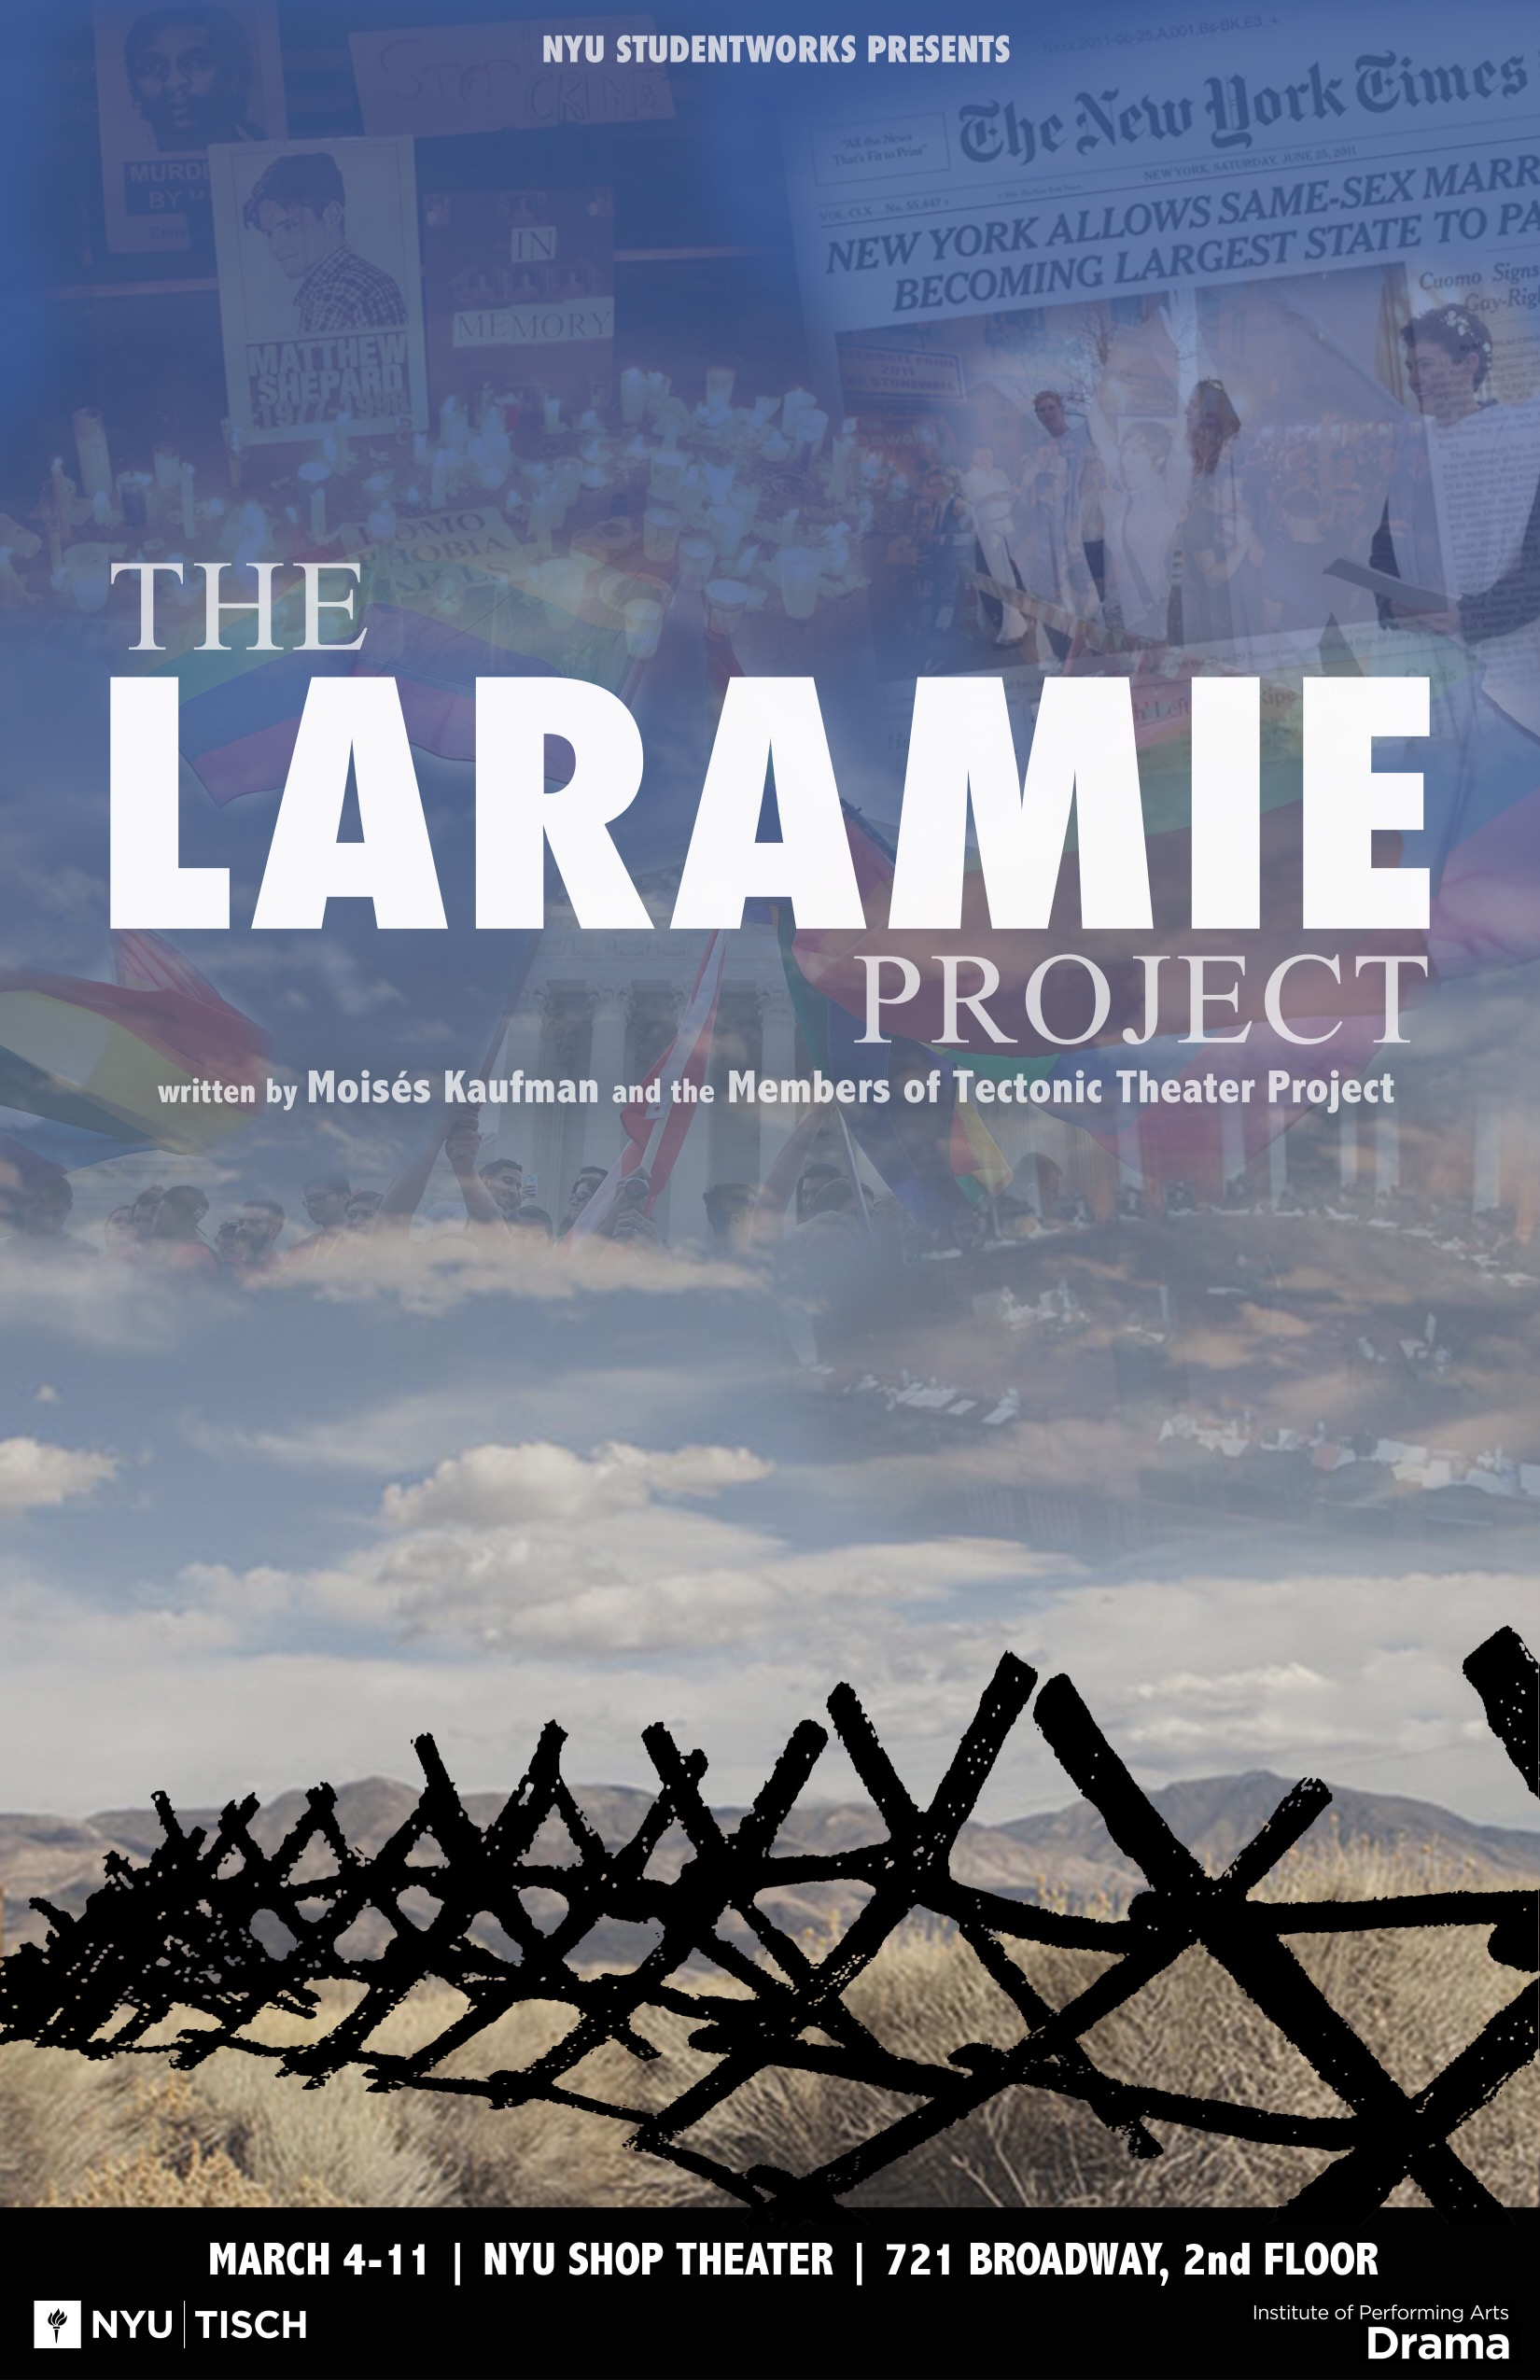 the laramie project For a year and a half following the murder of matthew shepard, moisés kaufman and his tectonic theater project–whose previous play, gross indecency, was hailed as a work of unsurpassed originality–conducted hundreds of interviews with the citizens of laramie, wyoming, to create this portrait of.